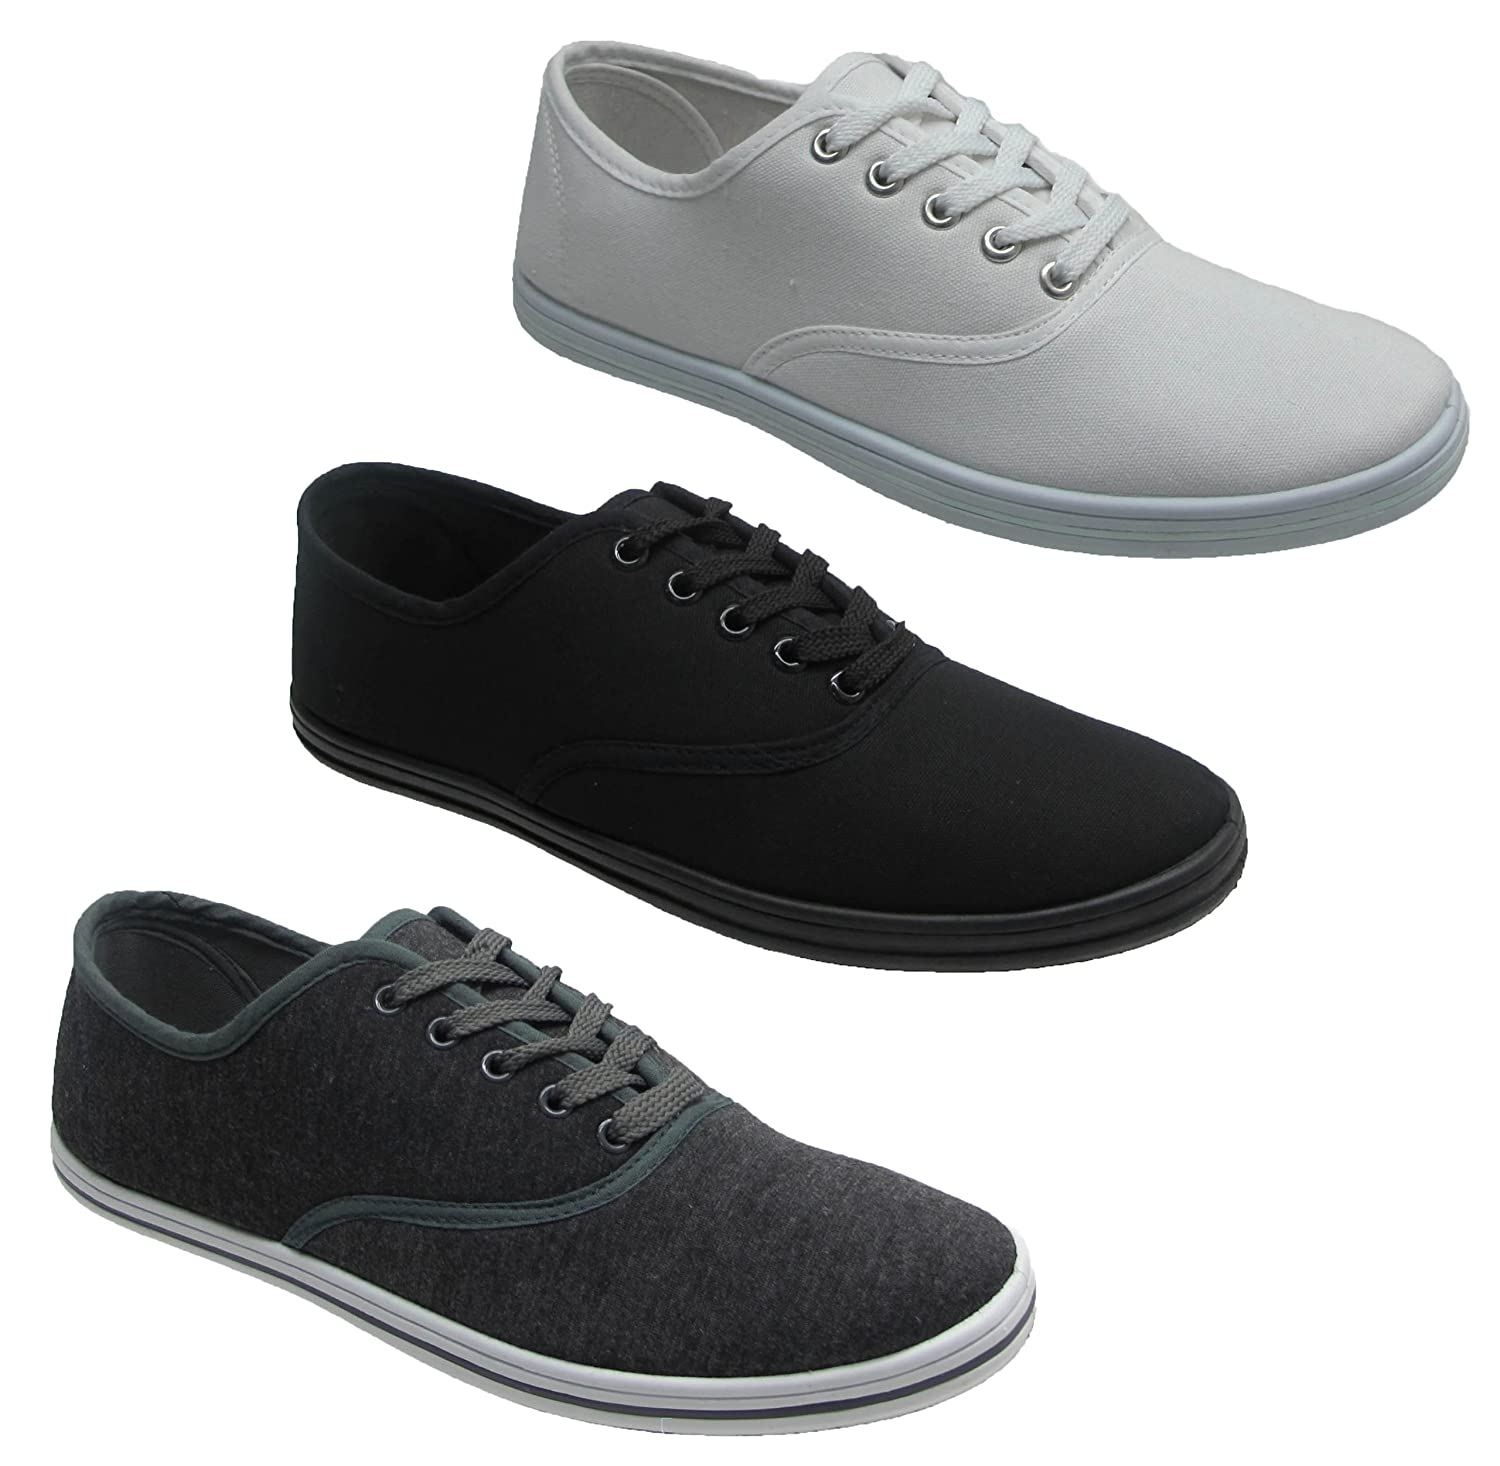 Free Pickup + Discount. FREE Pickup. FREE Pickup Today. Price $ to $ Go. Please enter a minimum and maximum price. 0 - $5. Men Canvas Shoes. Clothing. Shoes. Mens Shoes. All Mens Shoes. Mens Casual Canvas Shoes Driving Moccasins Lace up Trainers Sneakers Plimsolls Size 9. Reduced Price. Product Image.